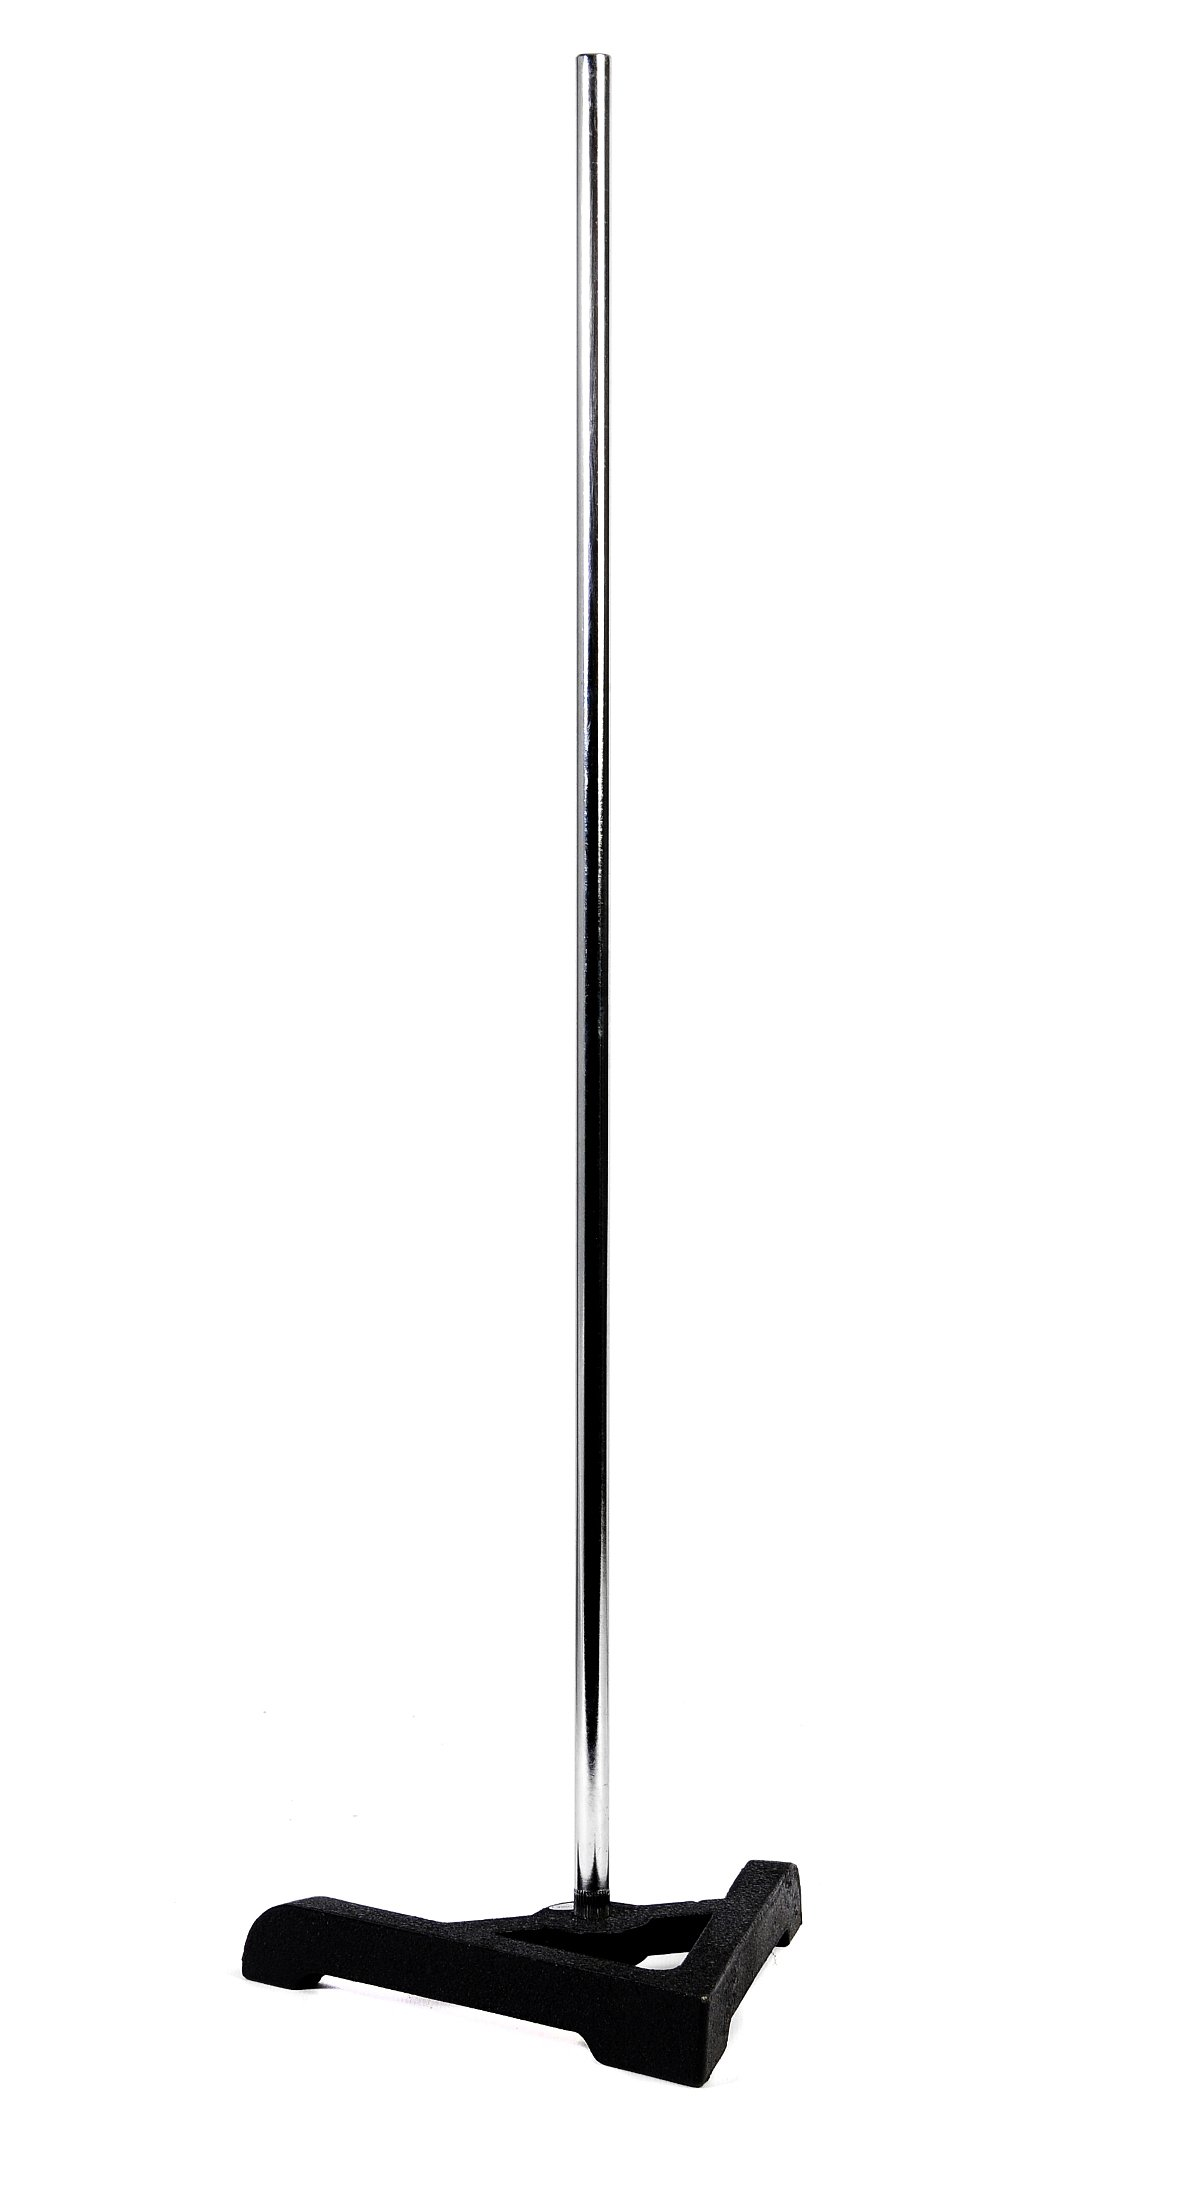 American Educational Cast Iron Support Ring Stand with Triangular Base, 7-3/4'' Legs, 7/16'' Diameter x 23'' Length Rod Size by American Educational Products